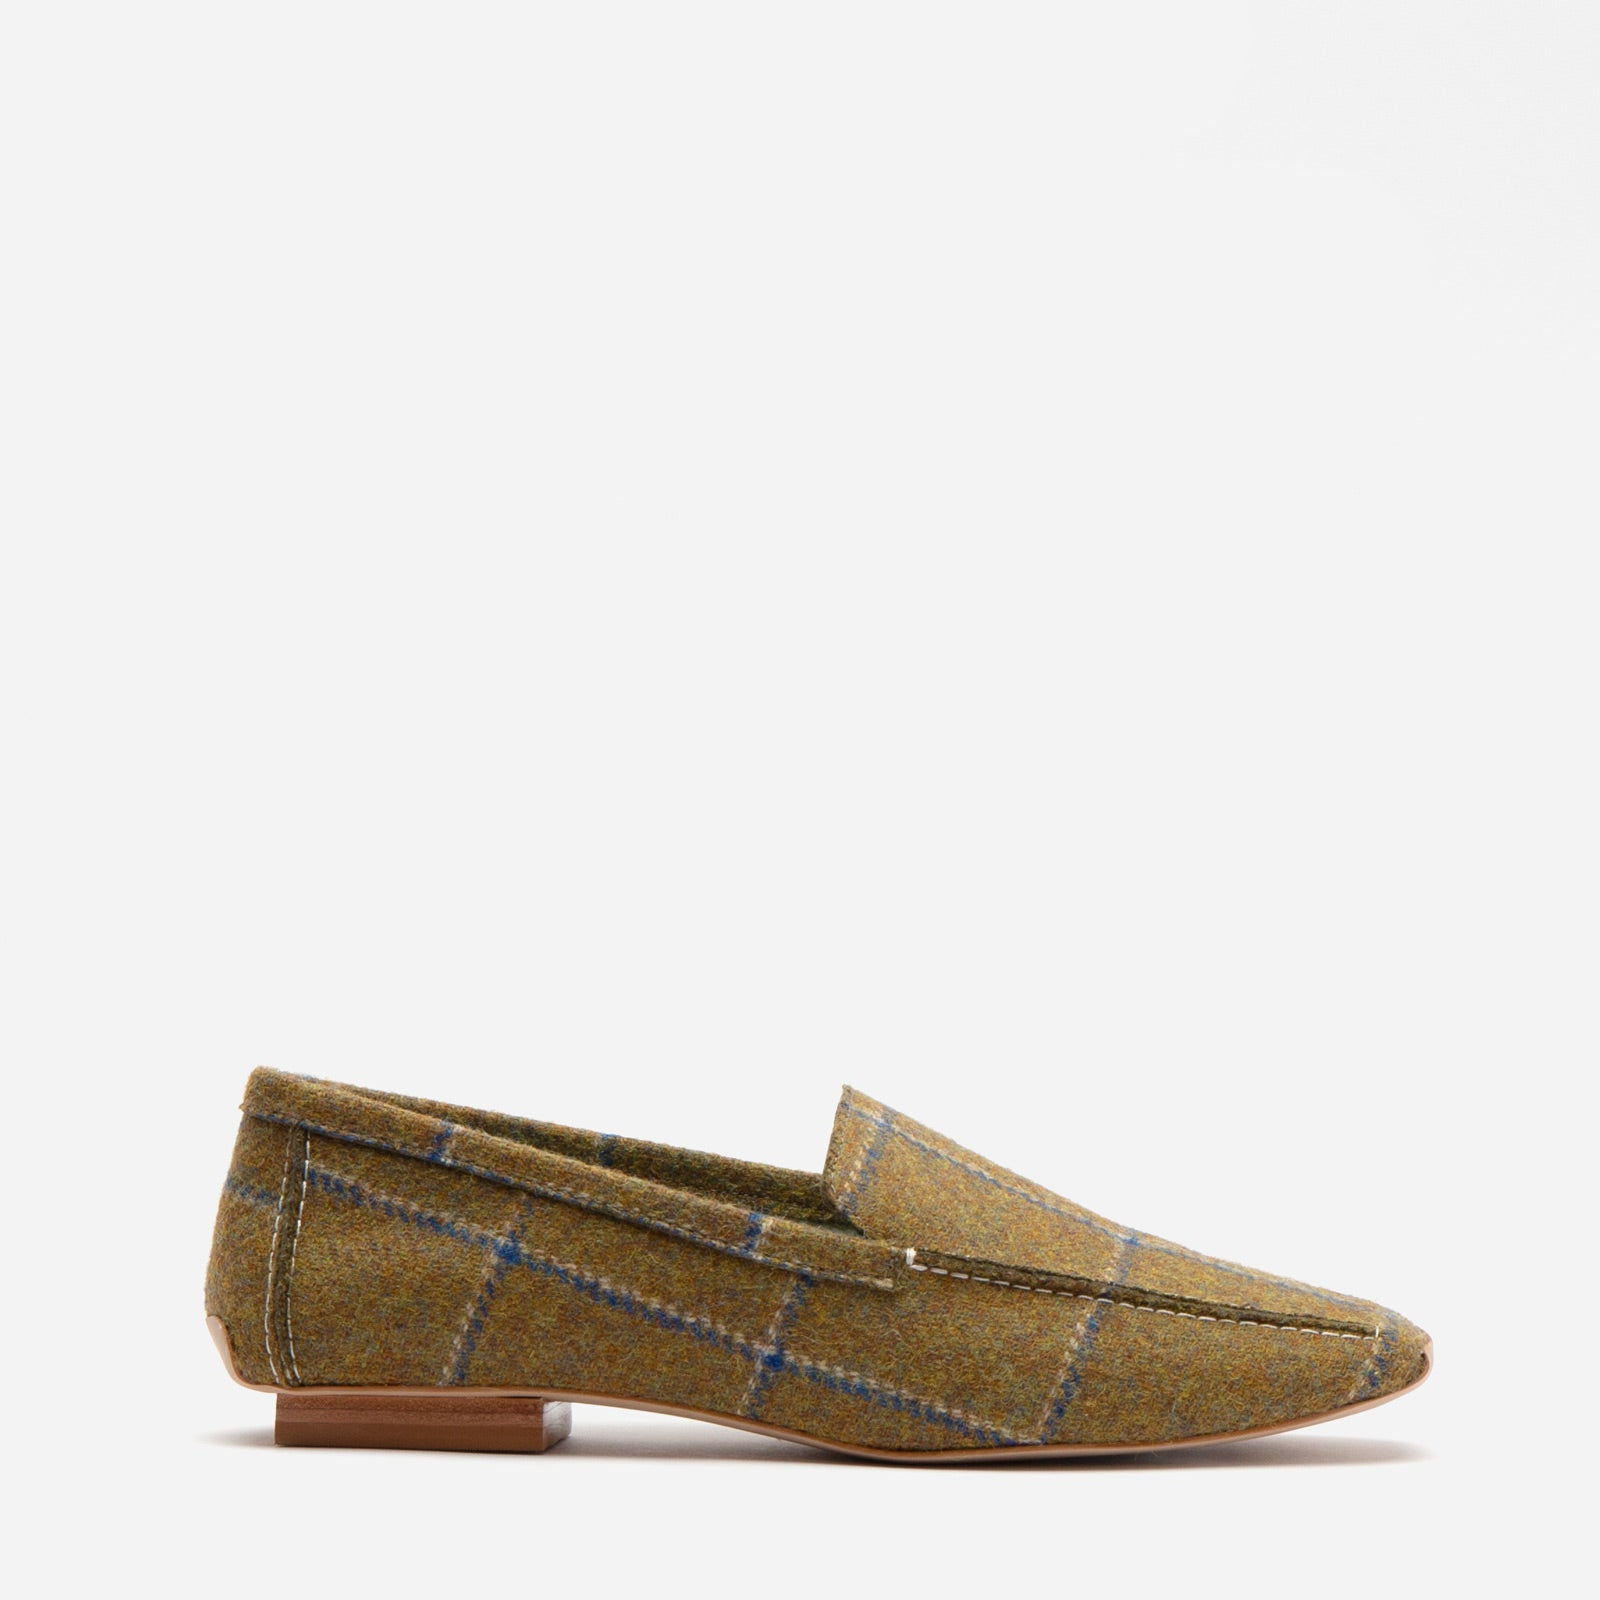 Elyce Loafer Wool Plaid Olive Navy - Frances Valentine